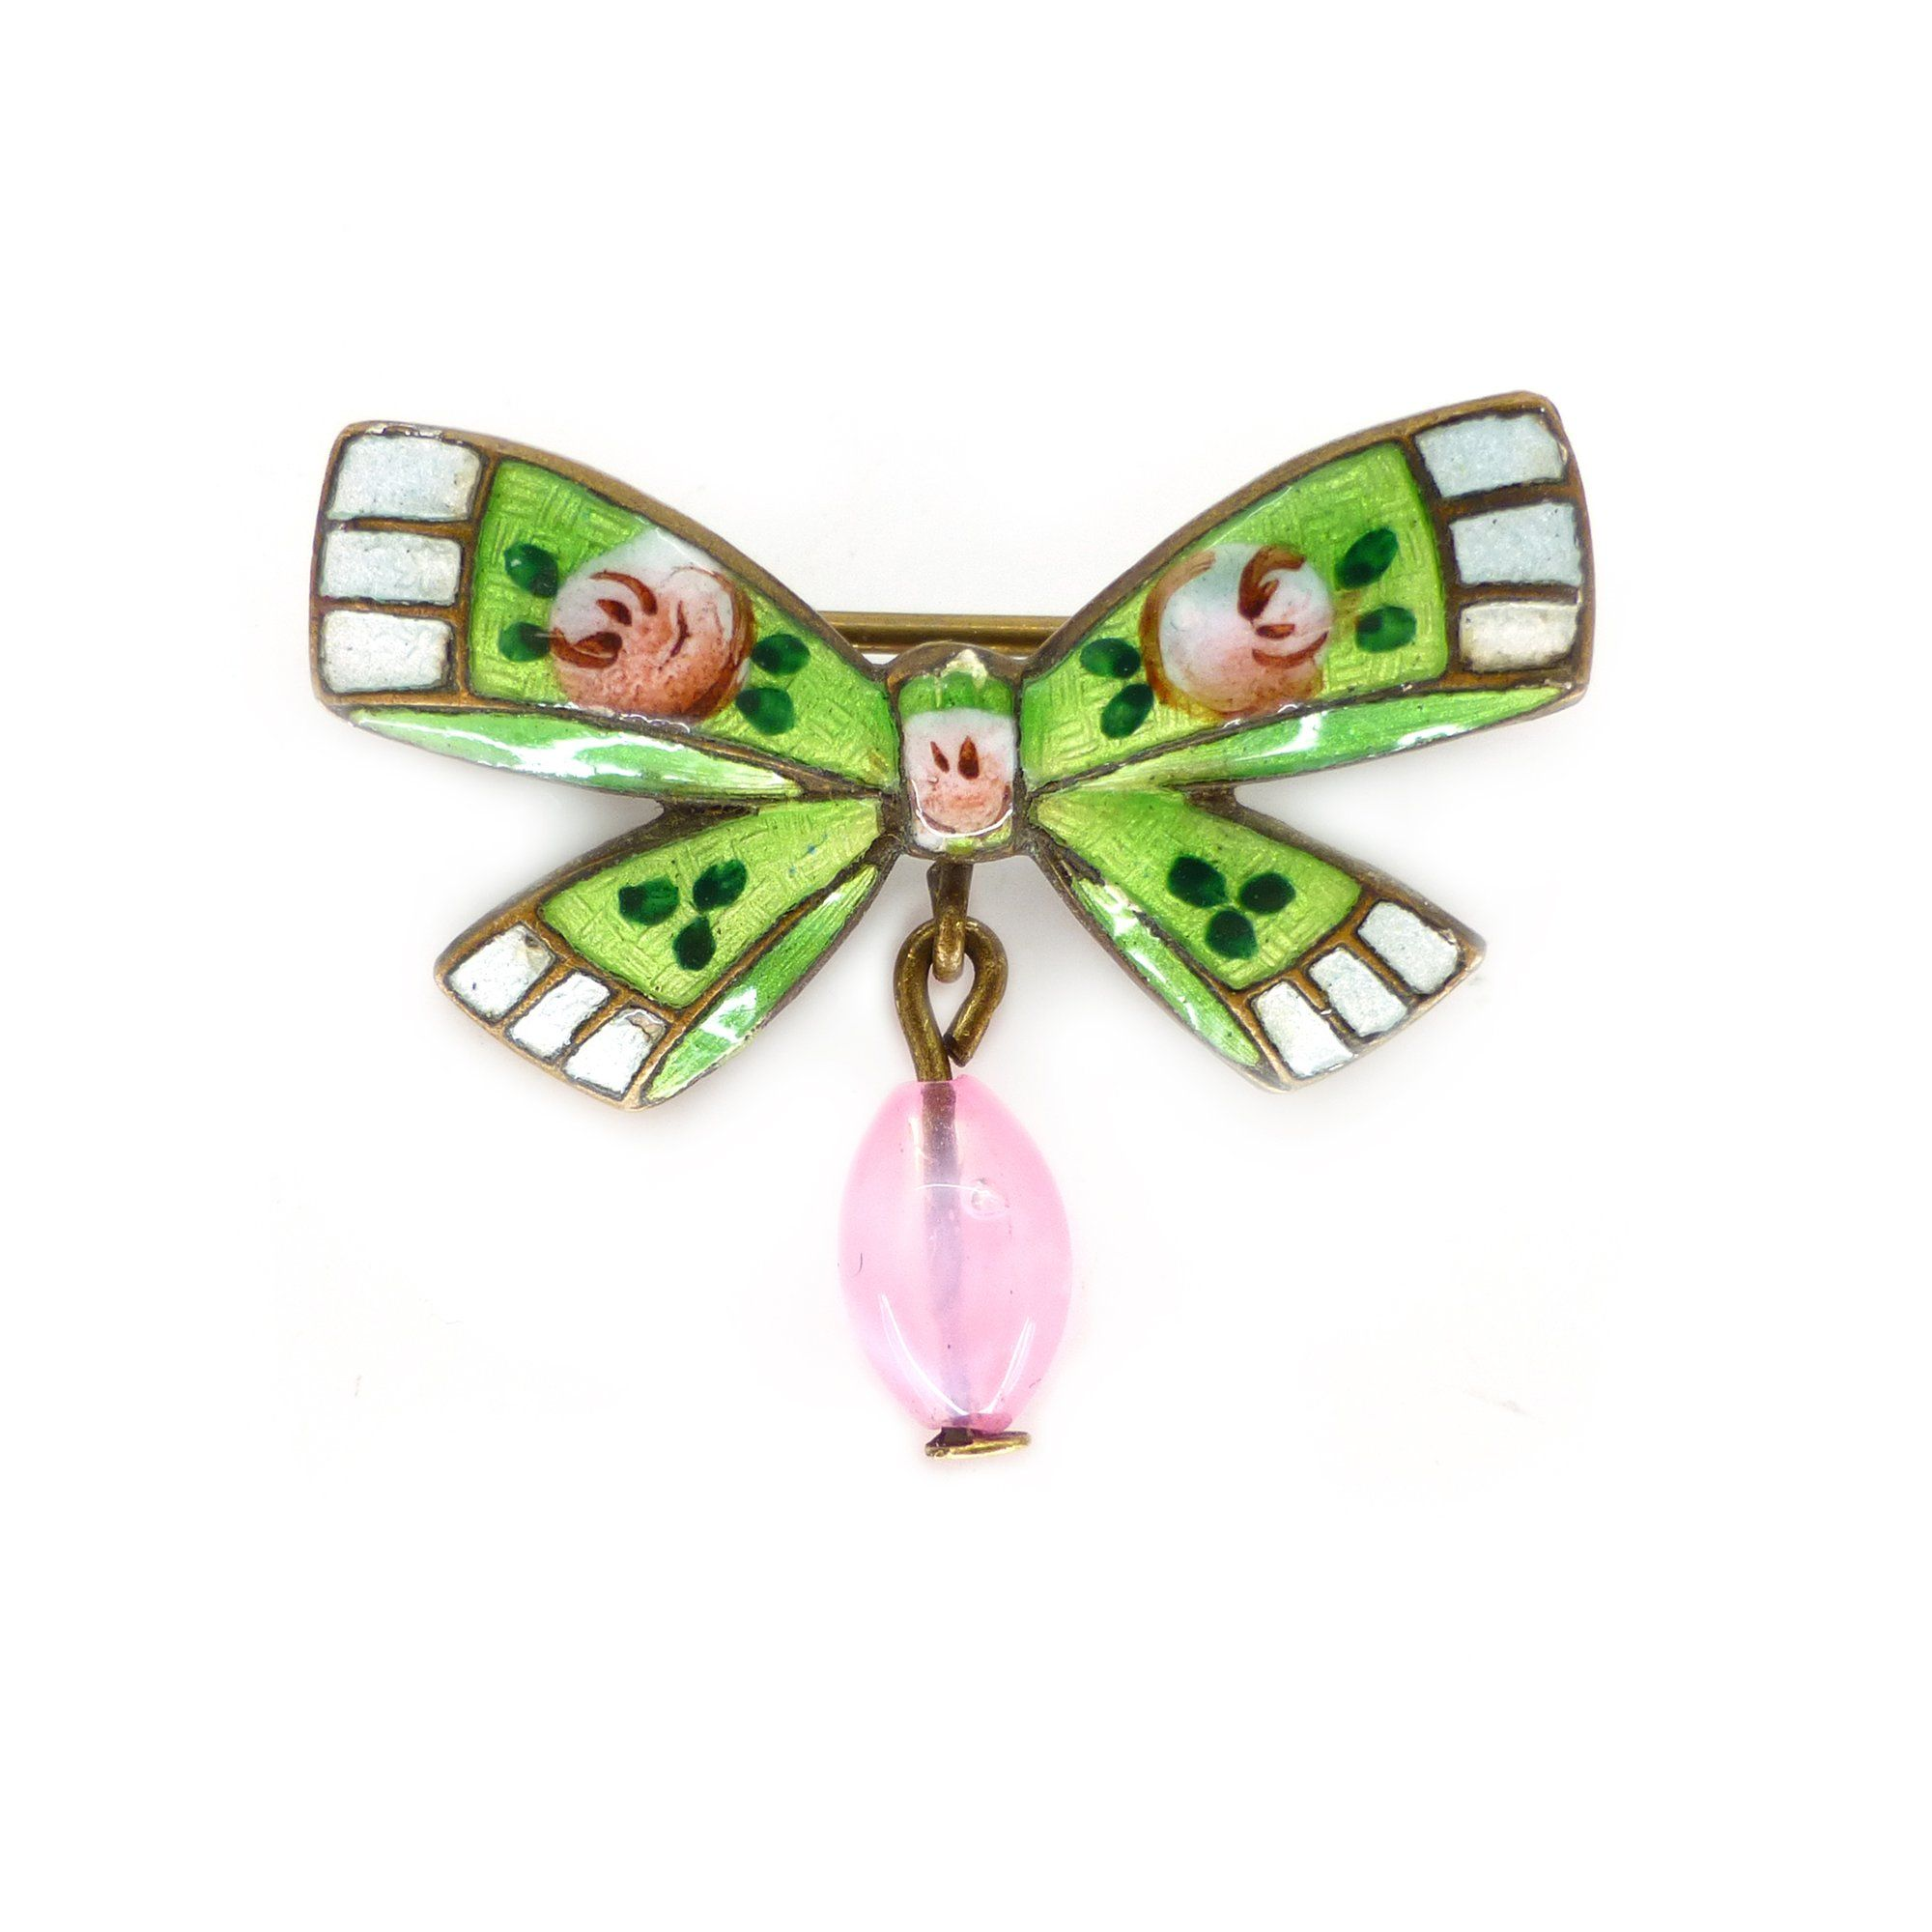 length house forrest cm ingo and hallmark pendant e peridot gold tim fac enamelled brooch salon in with henn s yellow faceted somerset enamel a diamonds